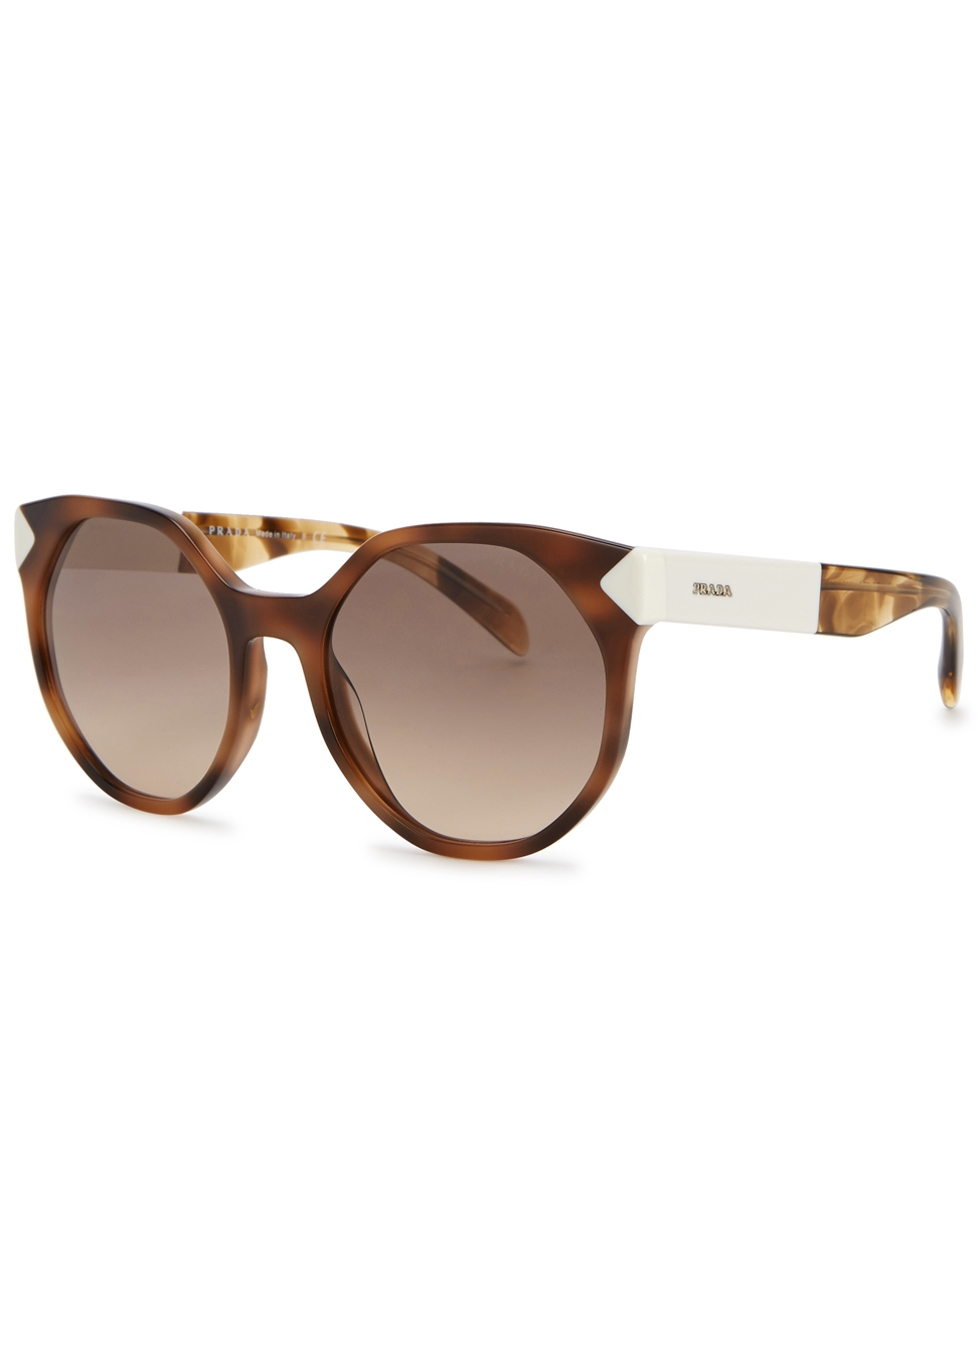 Tortoiseshell cat-eye sunglasses - Prada